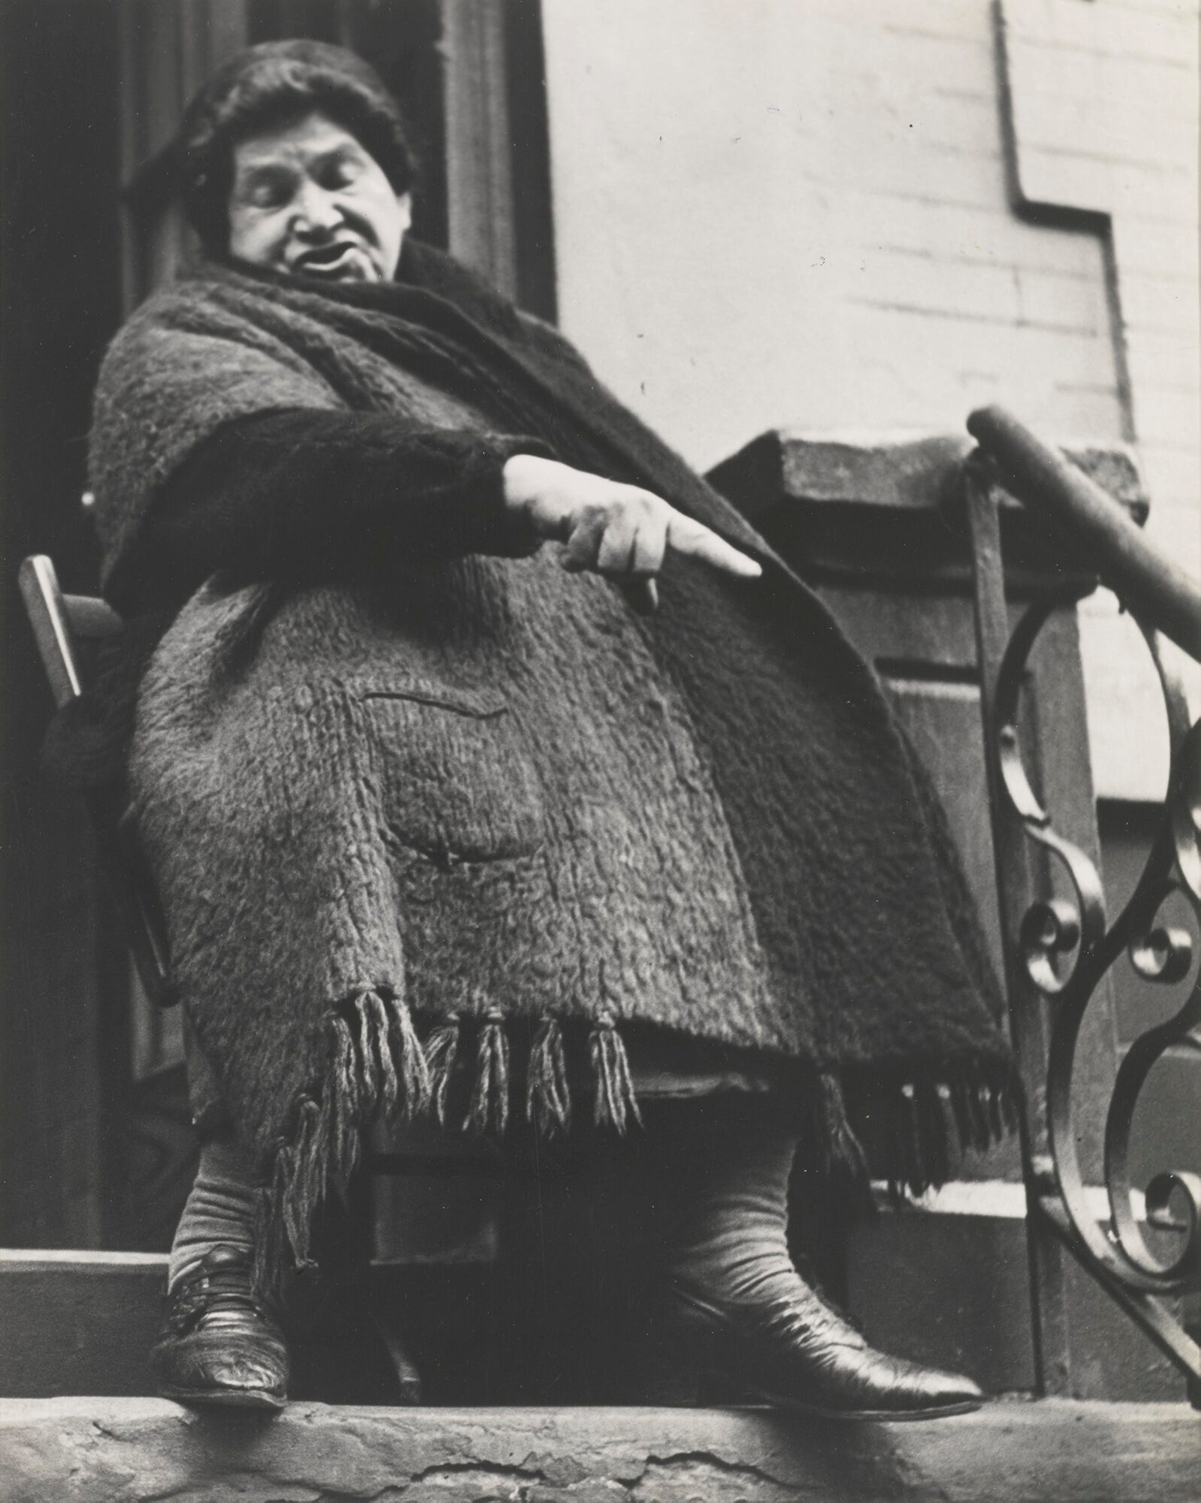 A woman sitting on a stoop gestures in this black and white photograph.